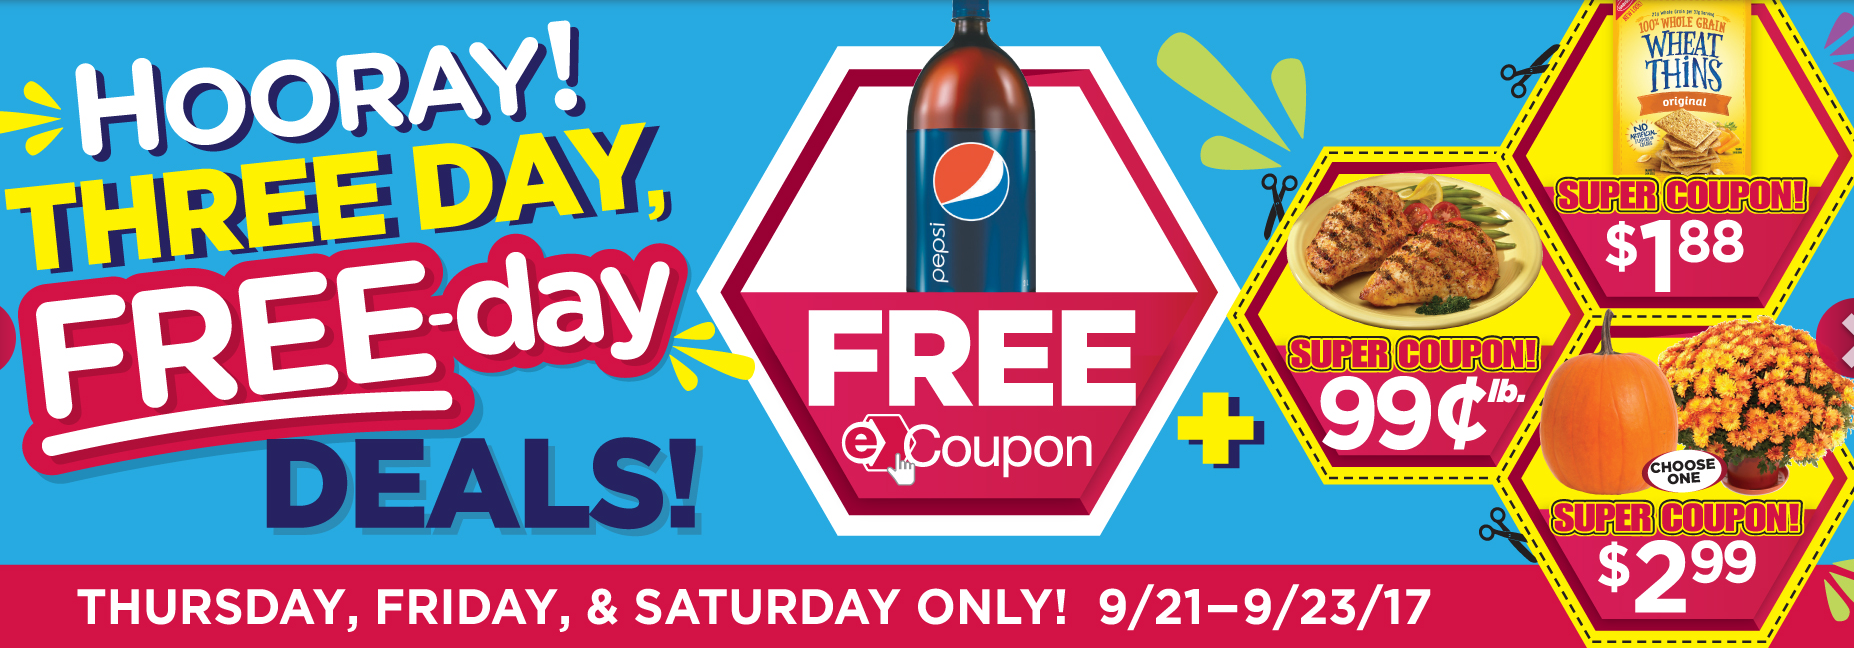 Tops E coupons: This weeks Three Day Free Day deals -> FREE Pepsi 2 liter, $.99lb Split Chicken Breast, 1.88 Wheat Thins, & $2.99 Mums or Pumpkins!!